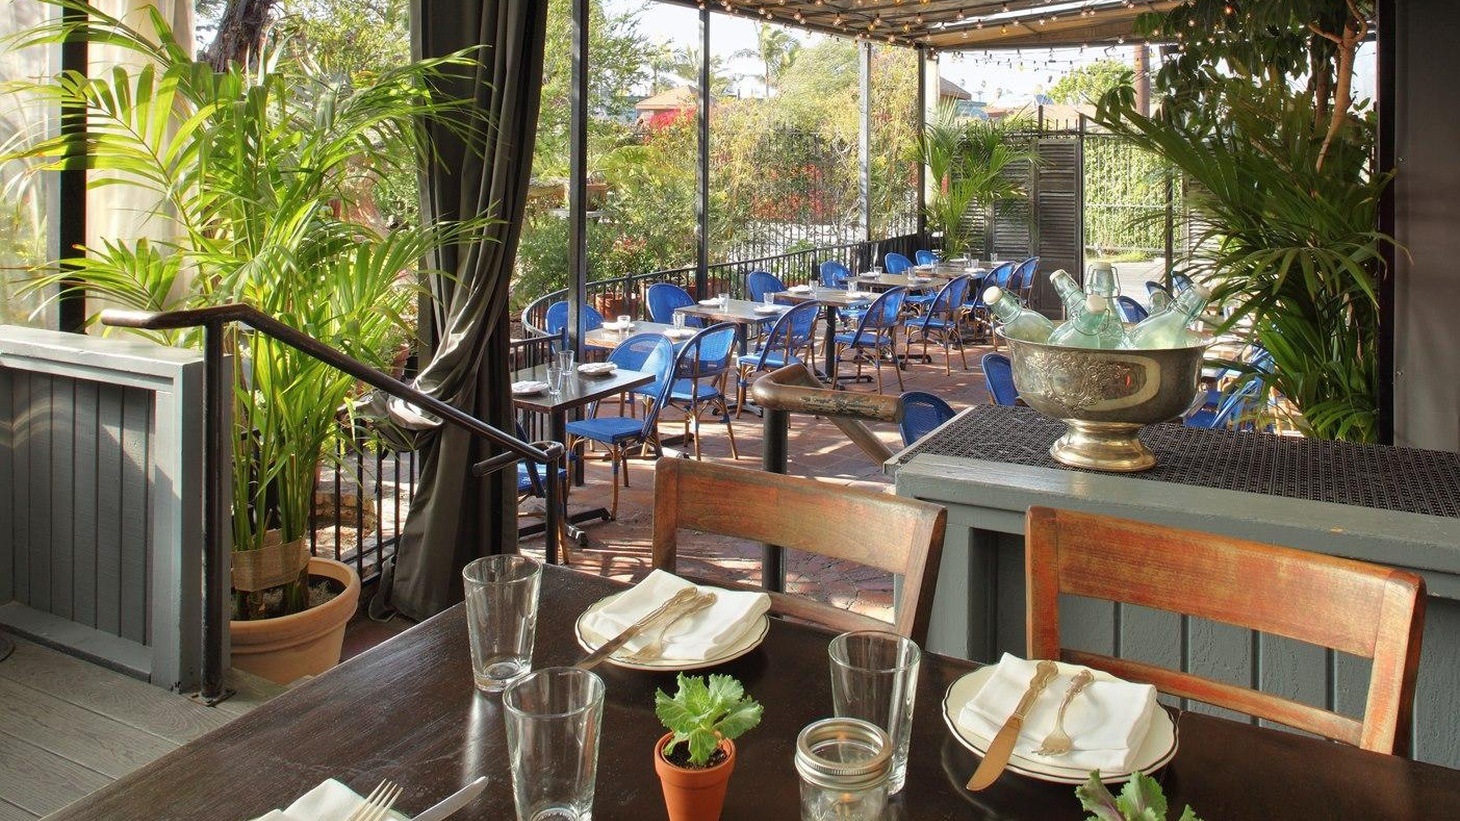 Jonathan Gold reviews Govind Armstrong's new restaurant Willie Jane in Venice.